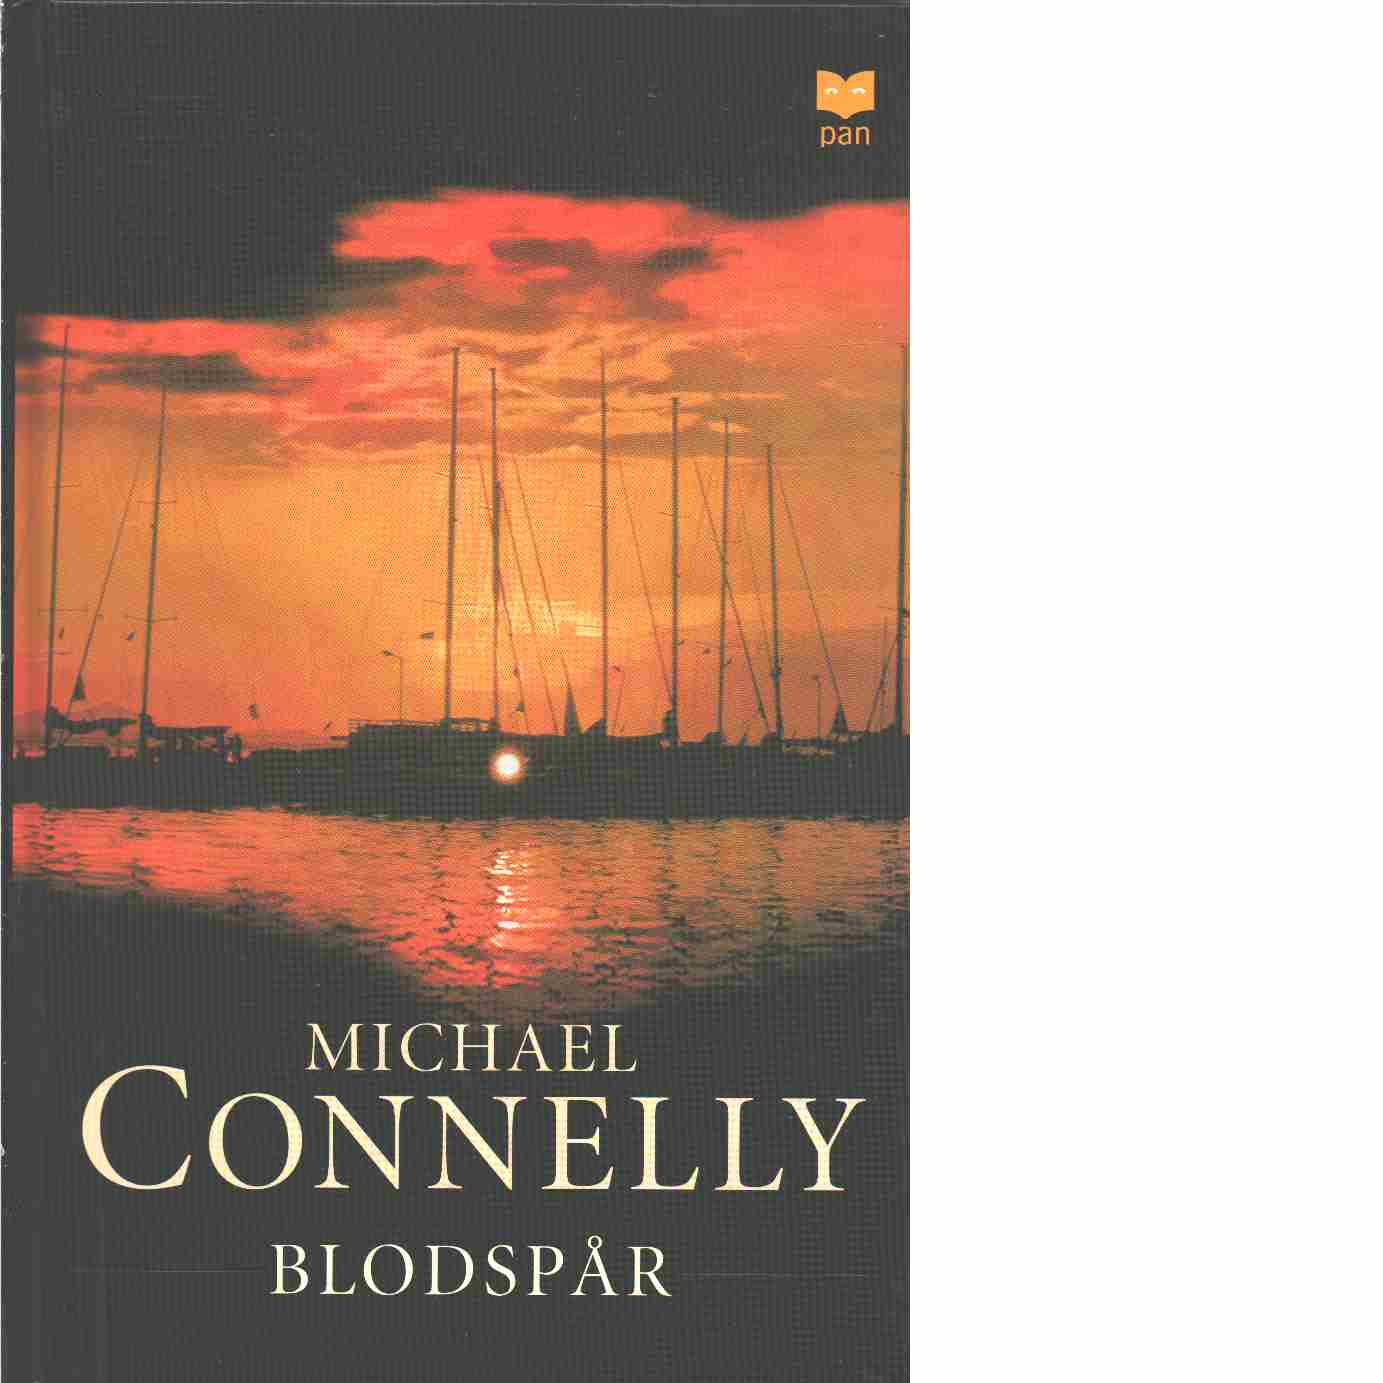 Blodspår - Connelly, Michael